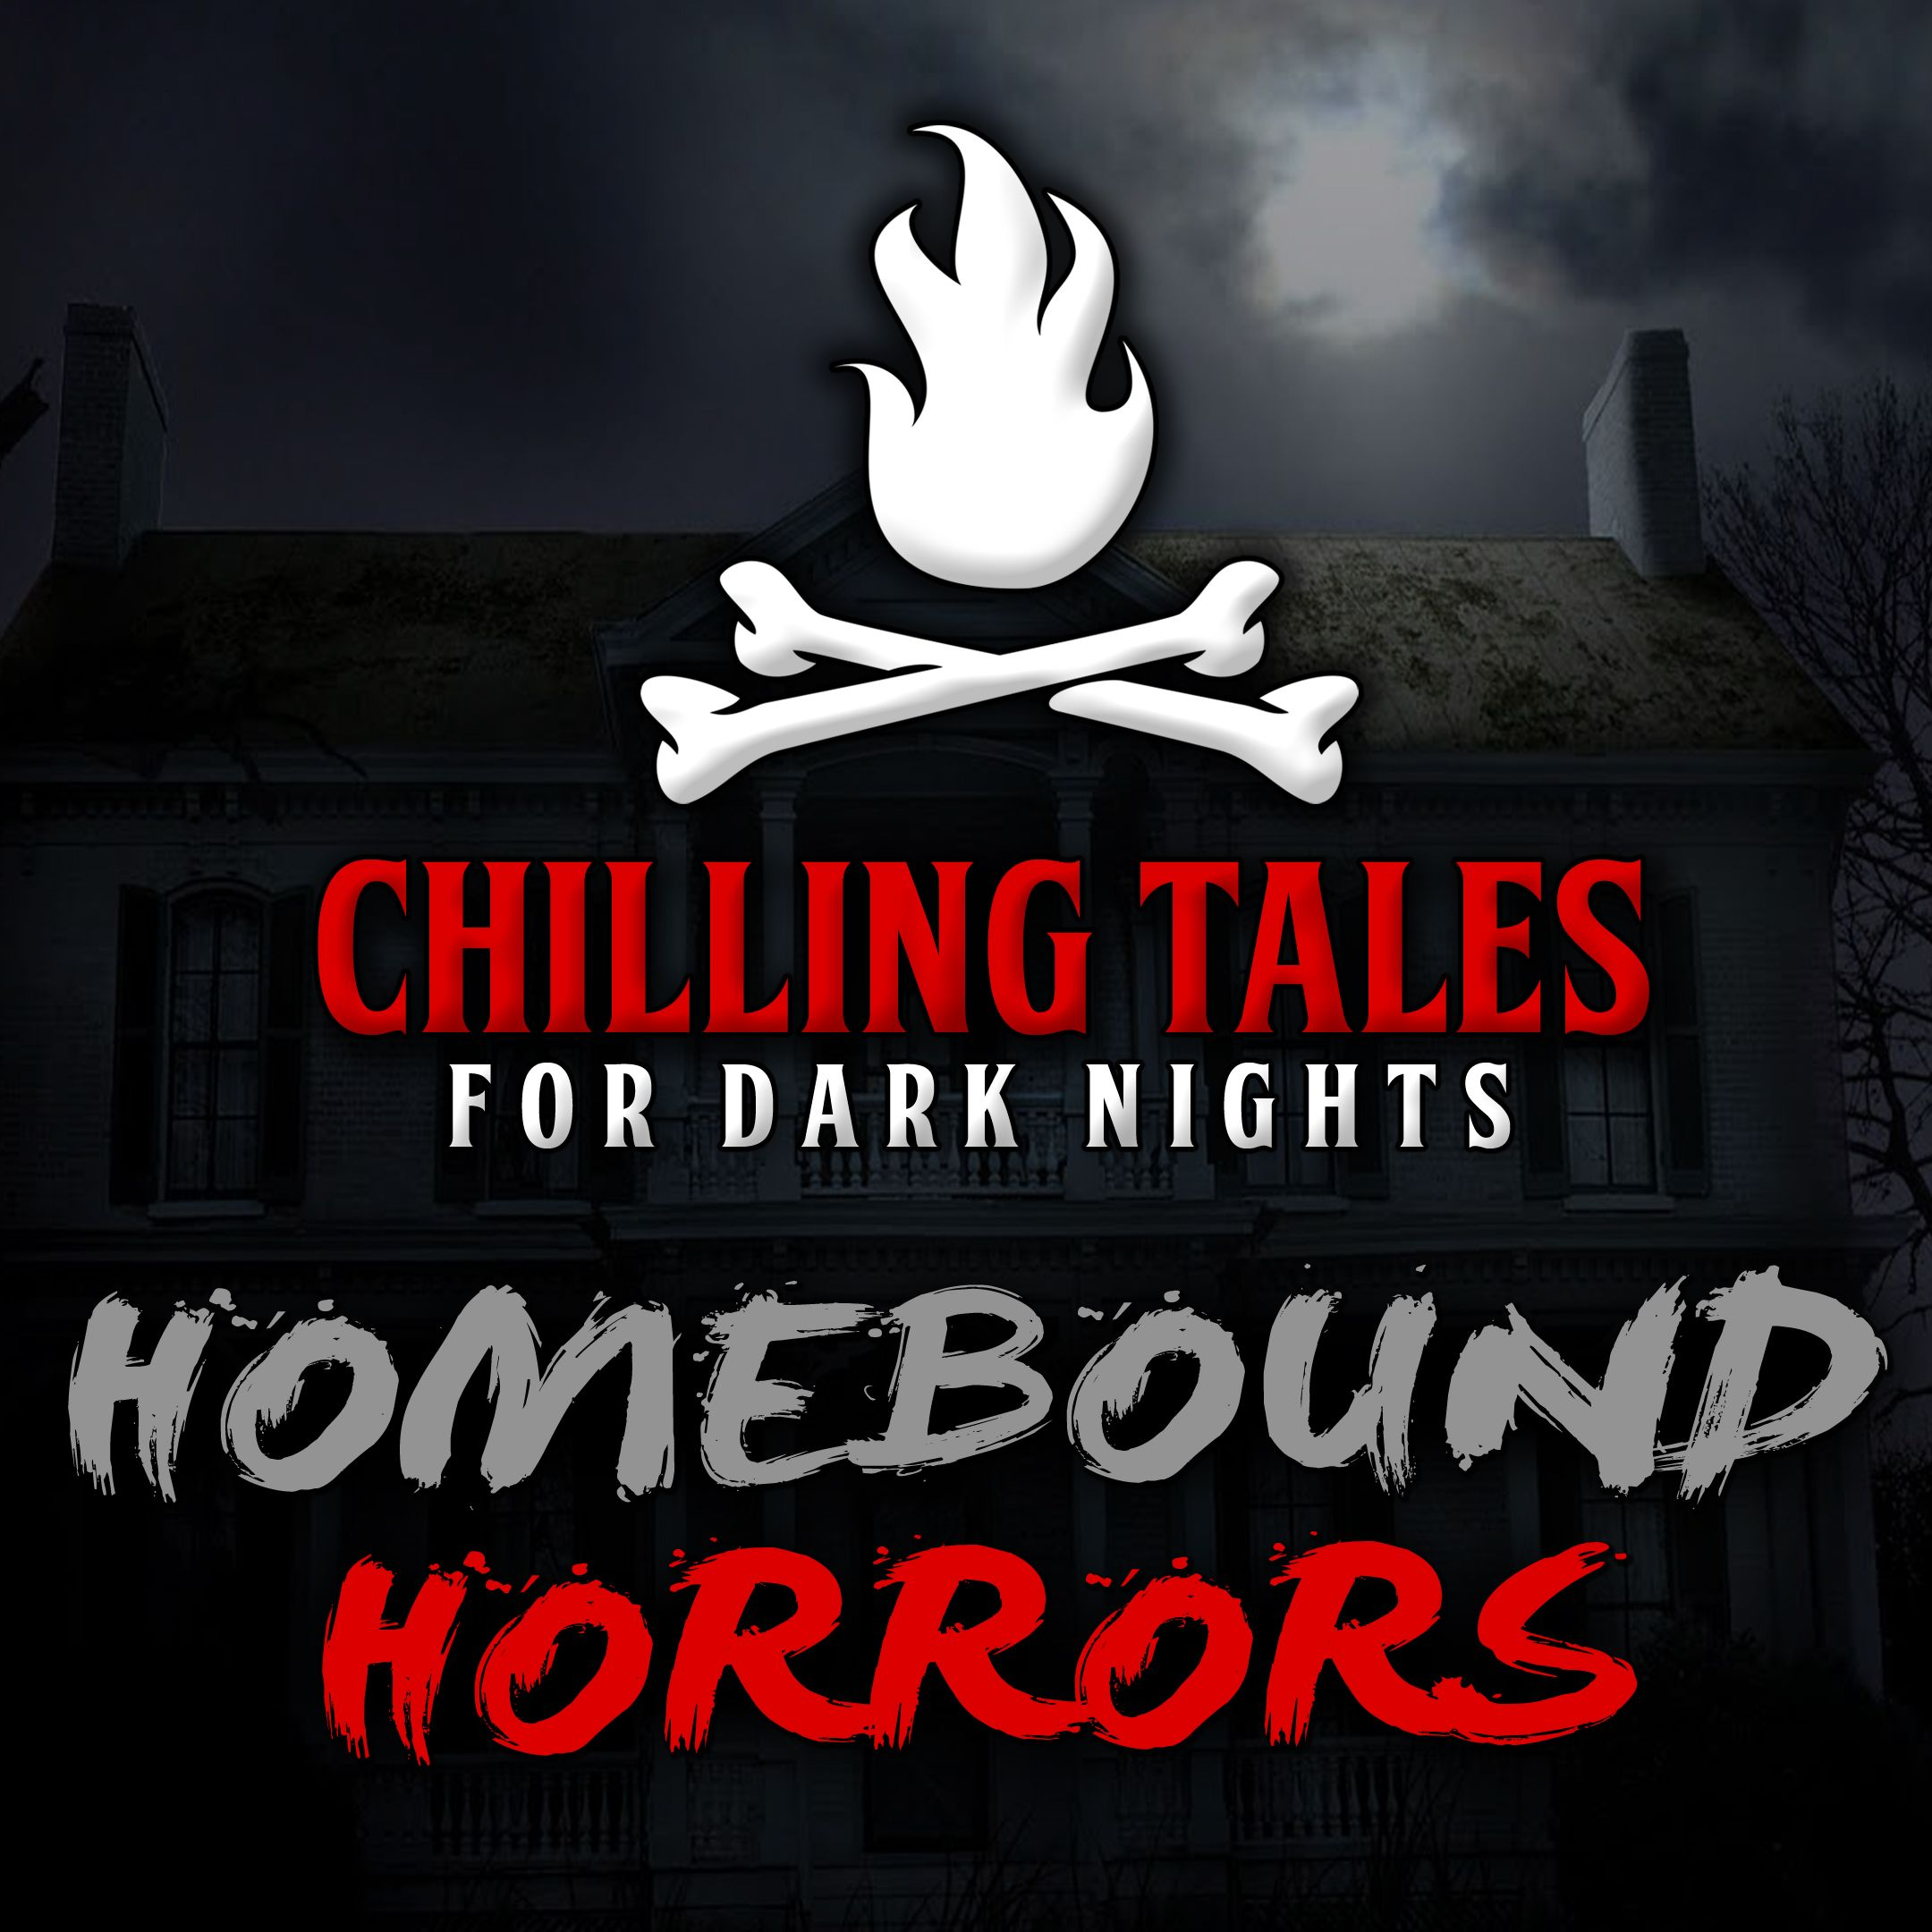 43: Homebound Horrors – Chilling Tales for Dark Nights